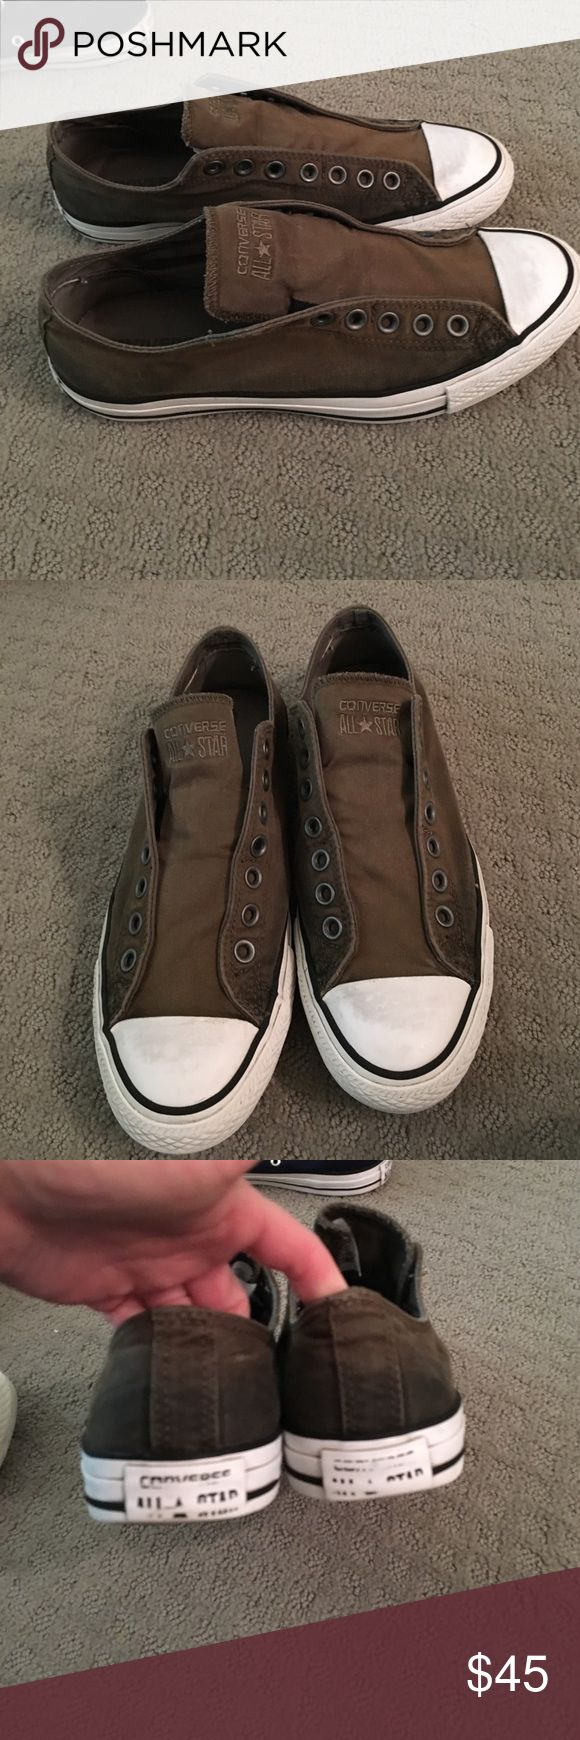 Converse mens size 8-1/2 = 9-1/2 Converse men's size 7-1/2 they run big so thy are size 9-1/2 olive green worn only a few times great condition they are like a olive green / brown Converse Shoes Sneakers